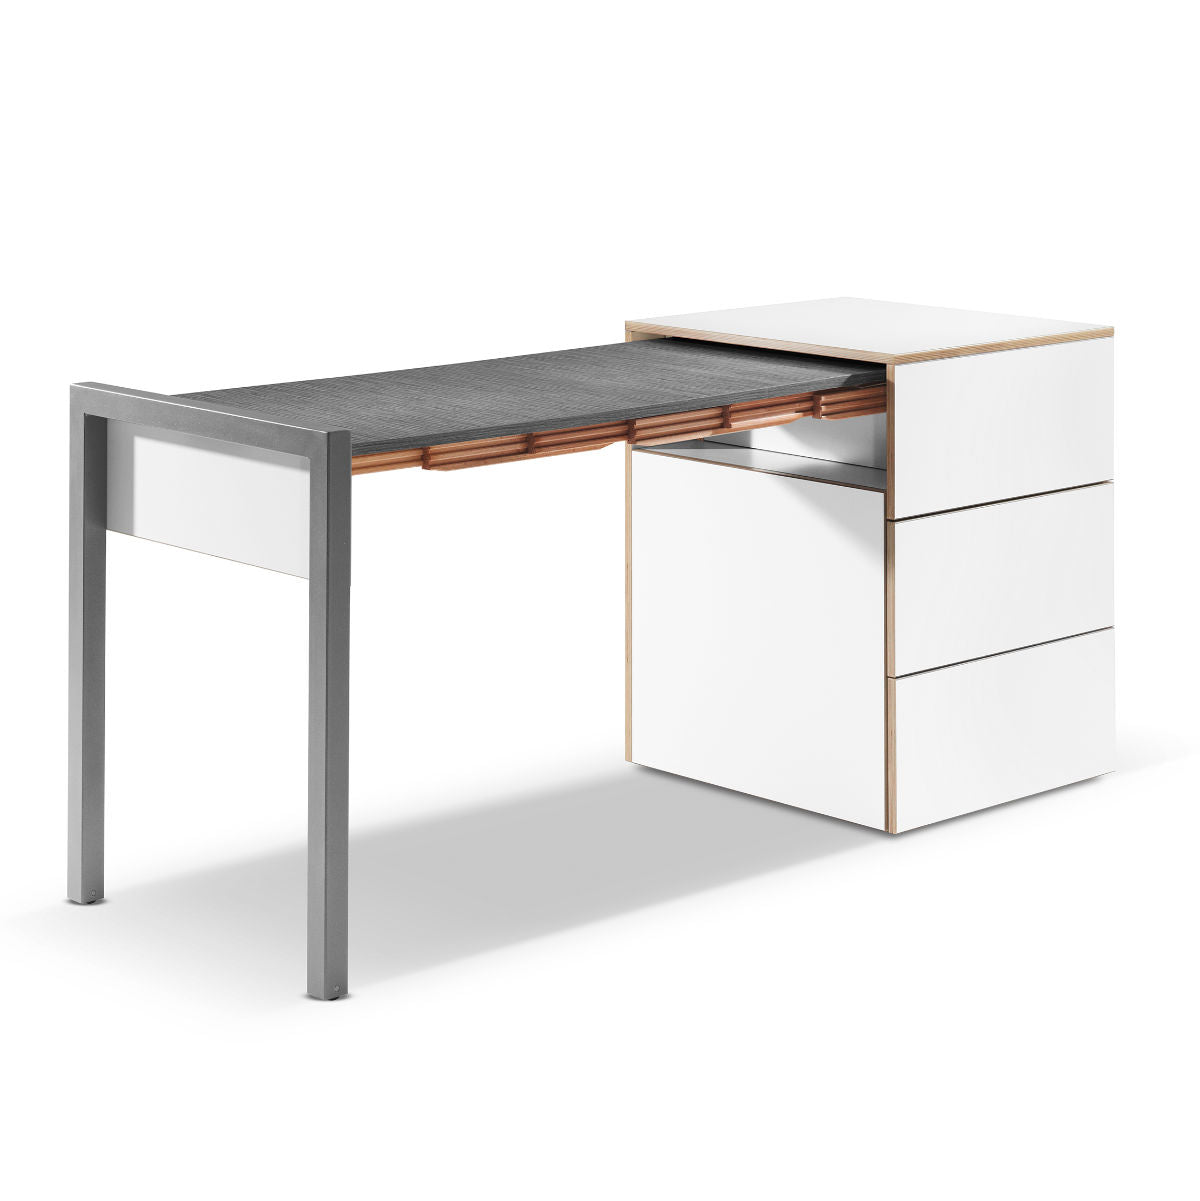 Country Living Alwin's Space Box, extendable table, white, orfeo dark top